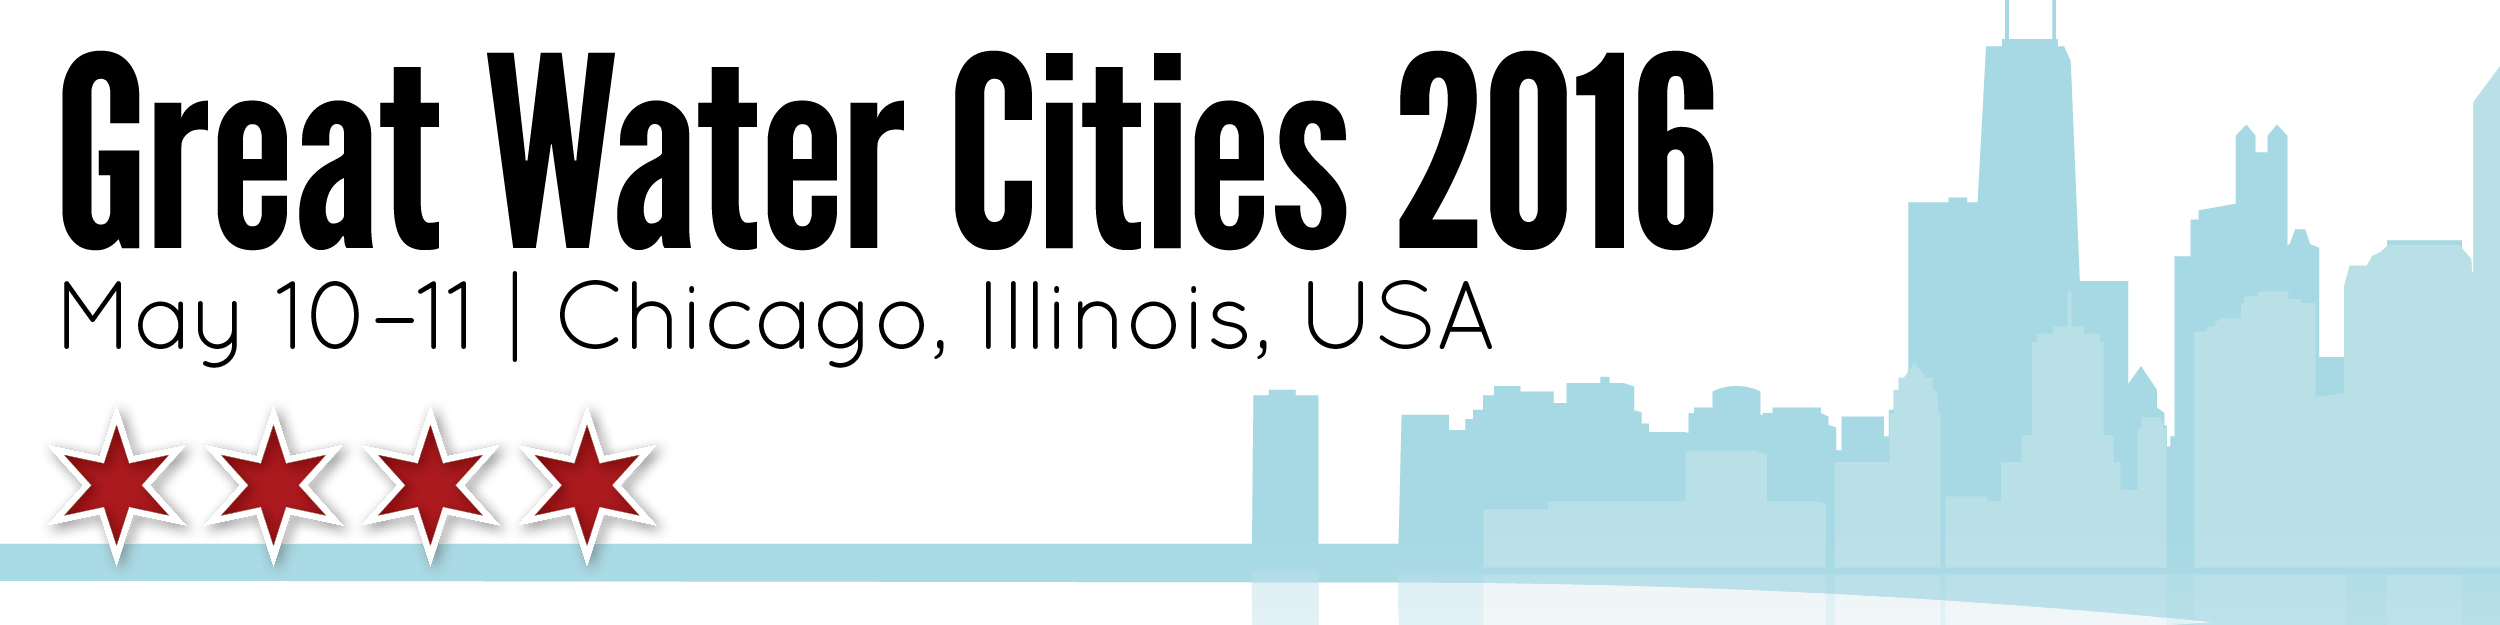 Great Water Cities 2016: Rainfall to Results in Action